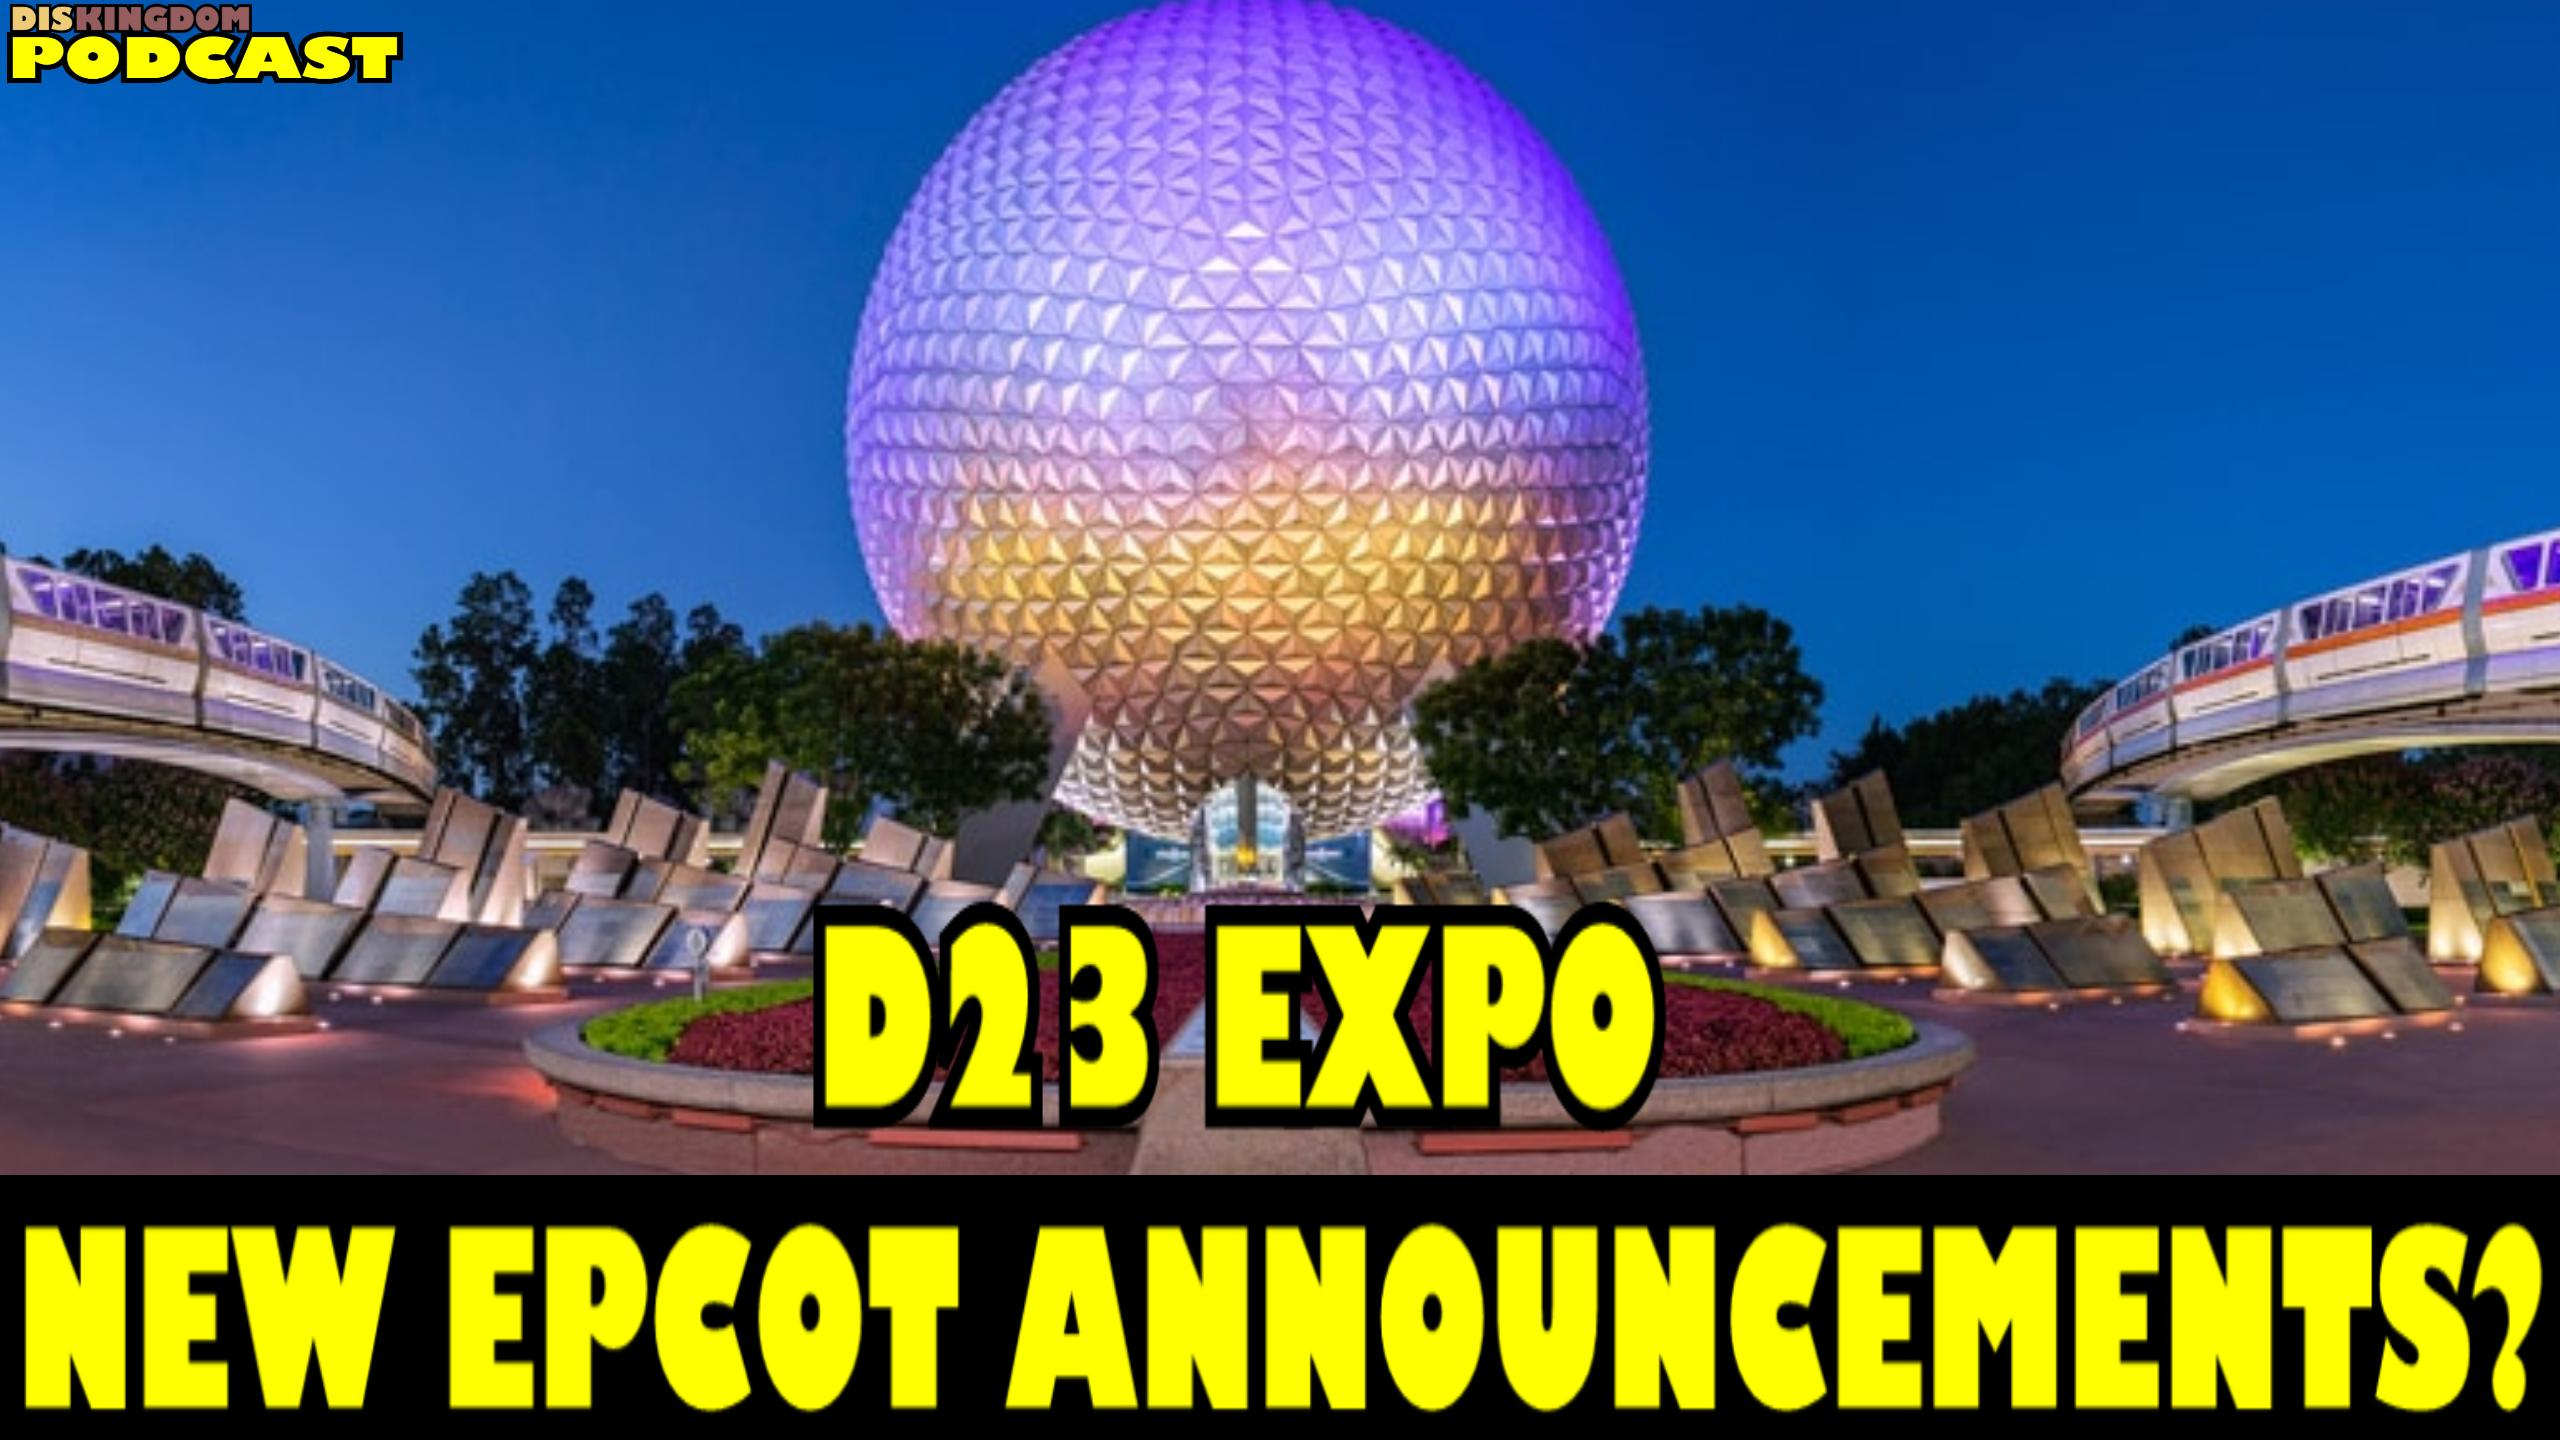 Will We See New Epcot Announcements At The D23 Expo? | DisKingdom Podcast